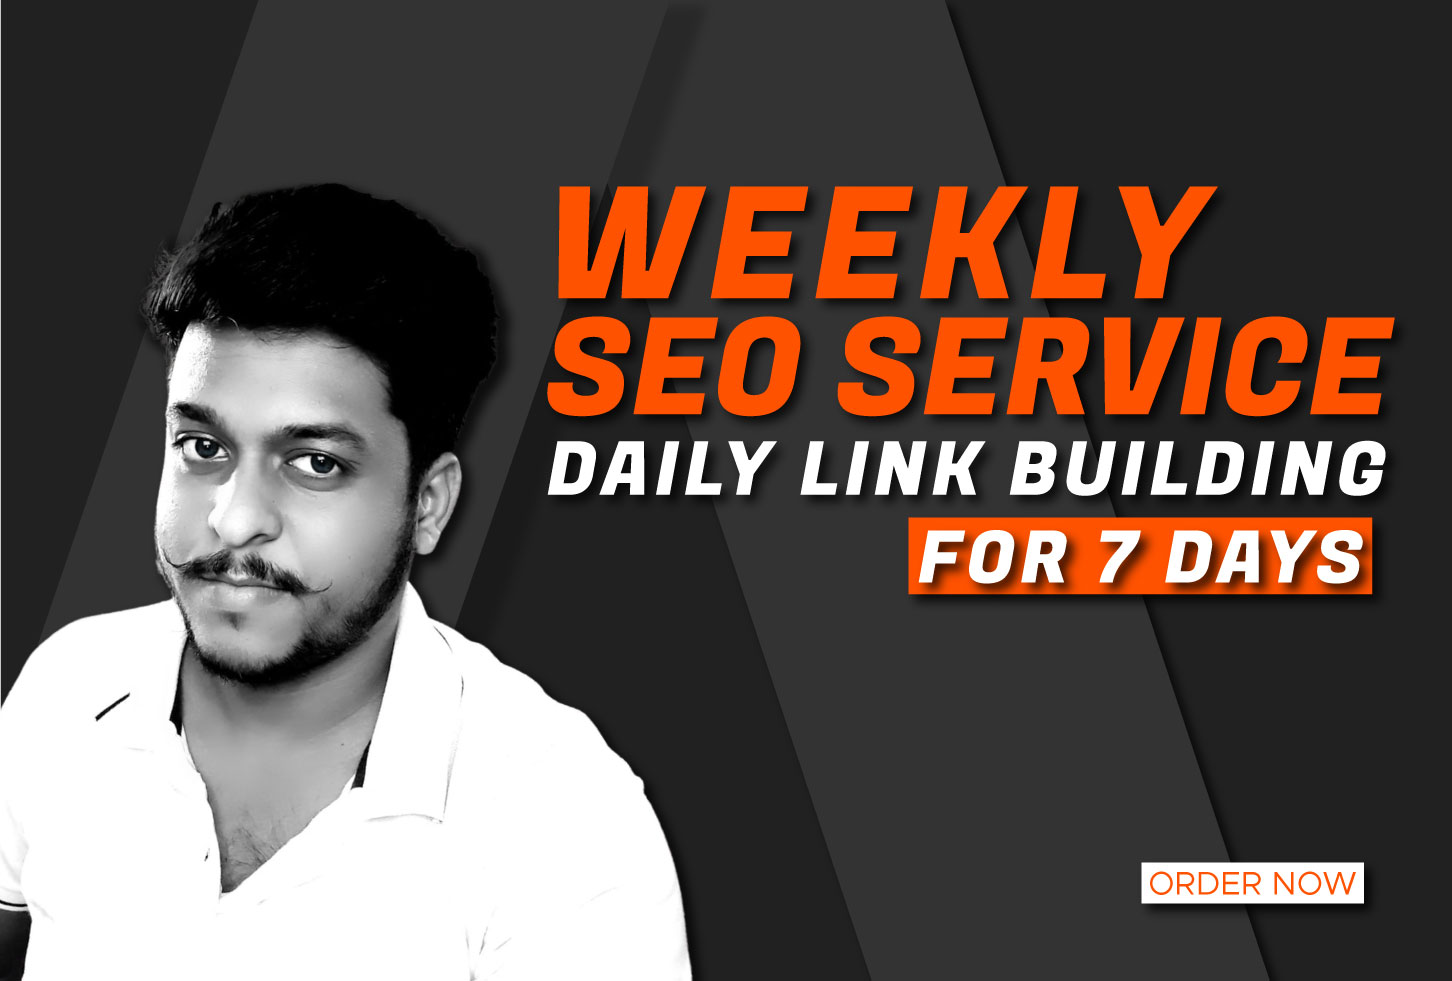 WEEKLY SEO SERVICE - Get Higher Ranking in 7 days